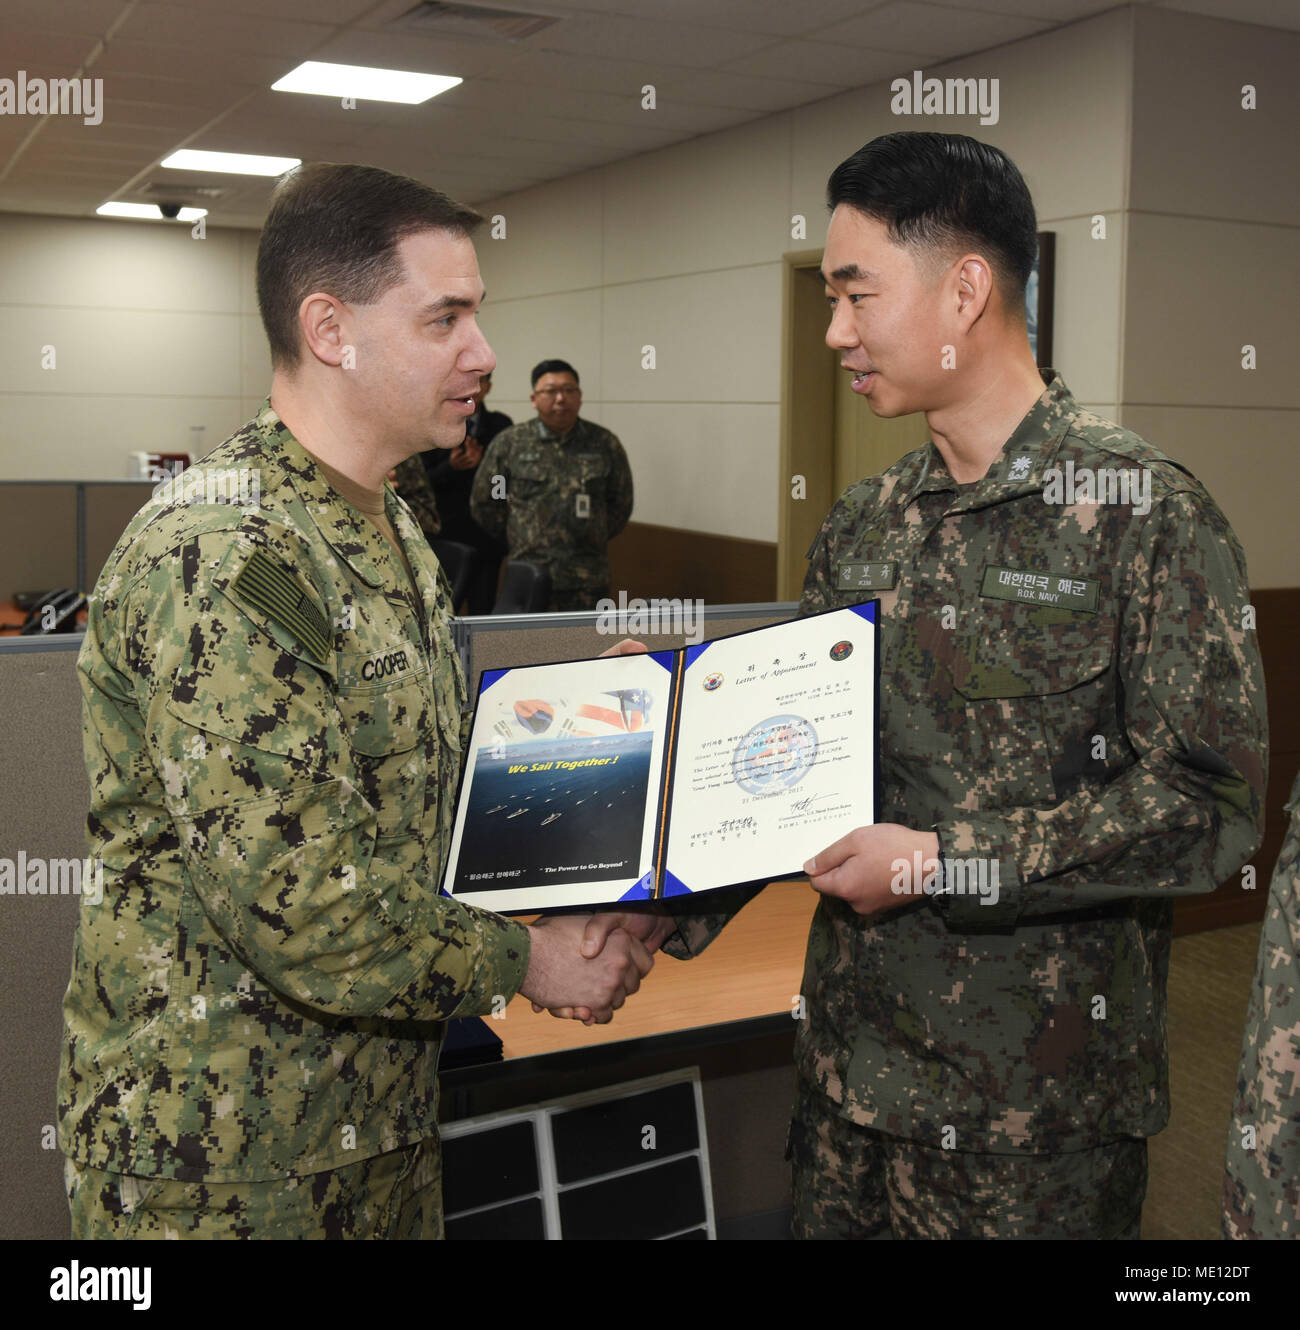 "171221-N-TB148-025 BUSAN, Republic of Korea (Dec. 21, 2017) Rear Adm. Brad Cooper, commander, U.S. Naval Forces Korea (CNFK), presents Lt. Cmdr. Kim, Bo Kyu with a letter of appointment for her selection to the ""Great Young Minds"" Junior Officers' Engagement and Cooperation Program. The ""Great Young Minds"" initiative brings together hand-selected, young officers from the ROK and U.S. navies and challenges them to develop innovative solutions to further enhance the ROK -U.S. alliance of the future. (U.S. Navy photo by Mass Communication Specialist Seaman William Carlisle) Stock Photo"